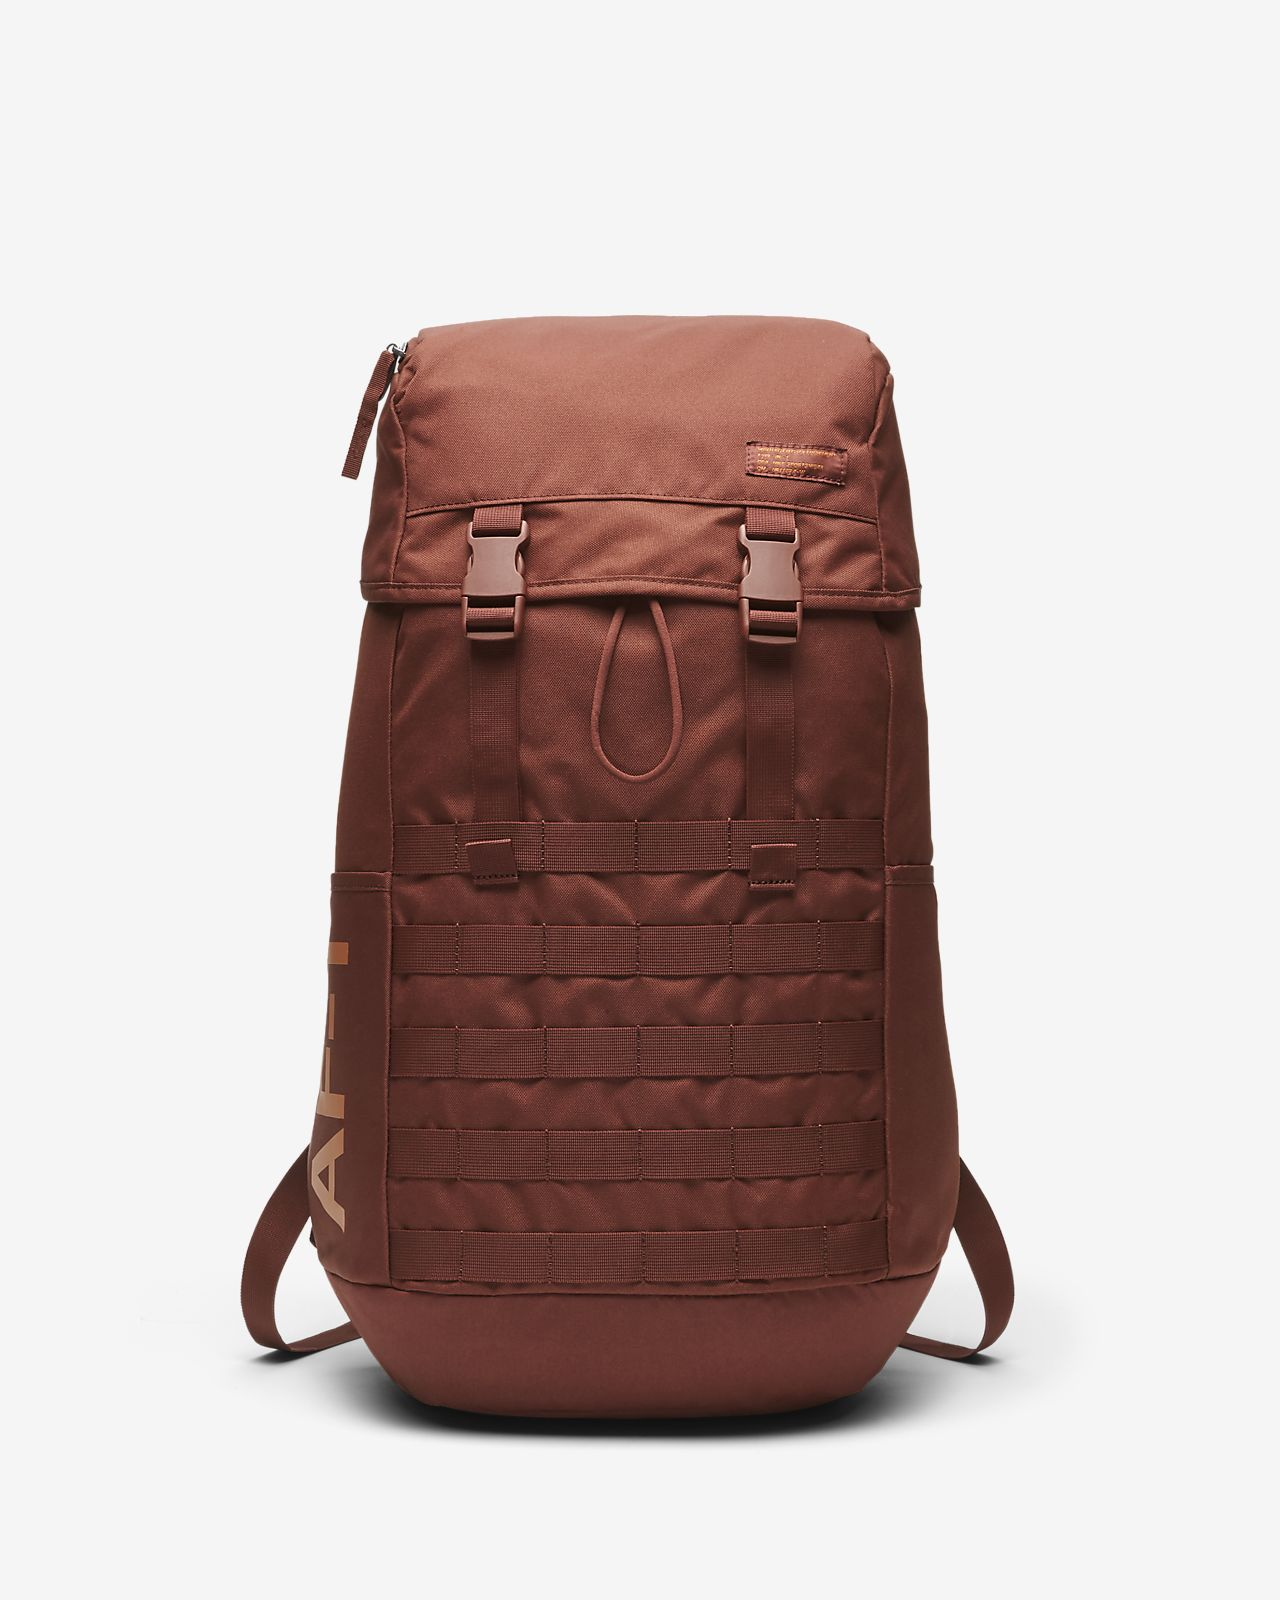 9c5548ba461e Low Resolution Nike Sportswear AF1 Backpack Nike Sportswear AF1 Backpack